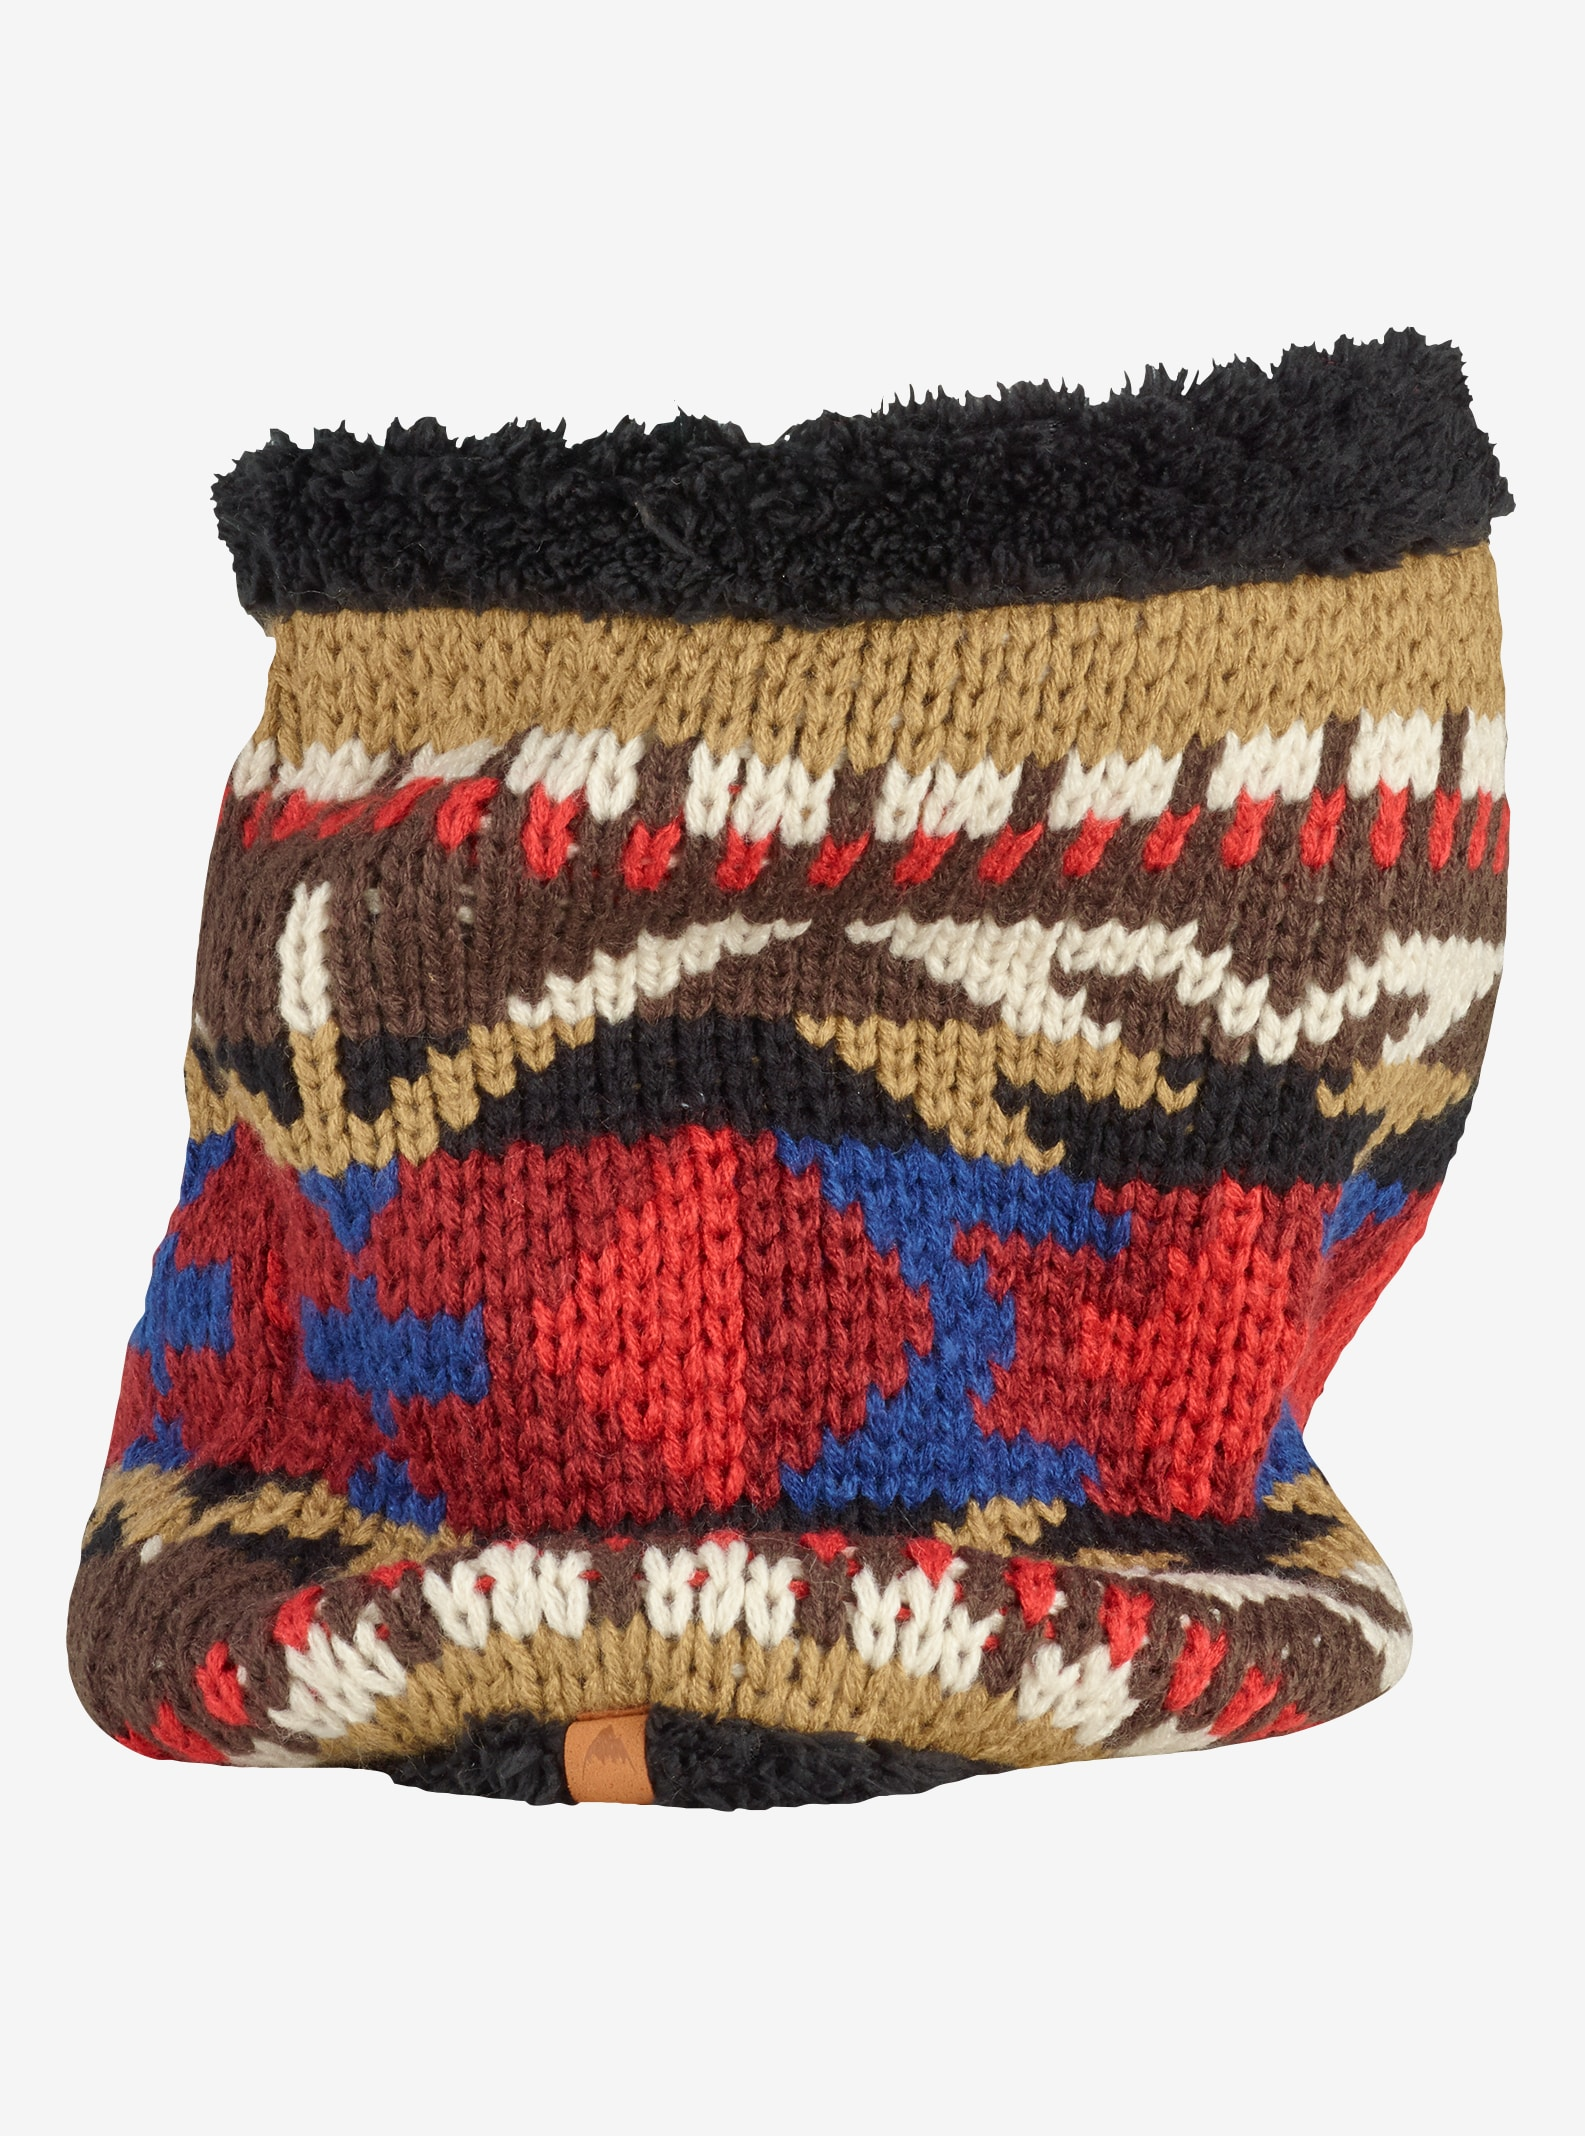 Burton Notch Neck Warmer shown in Stellar